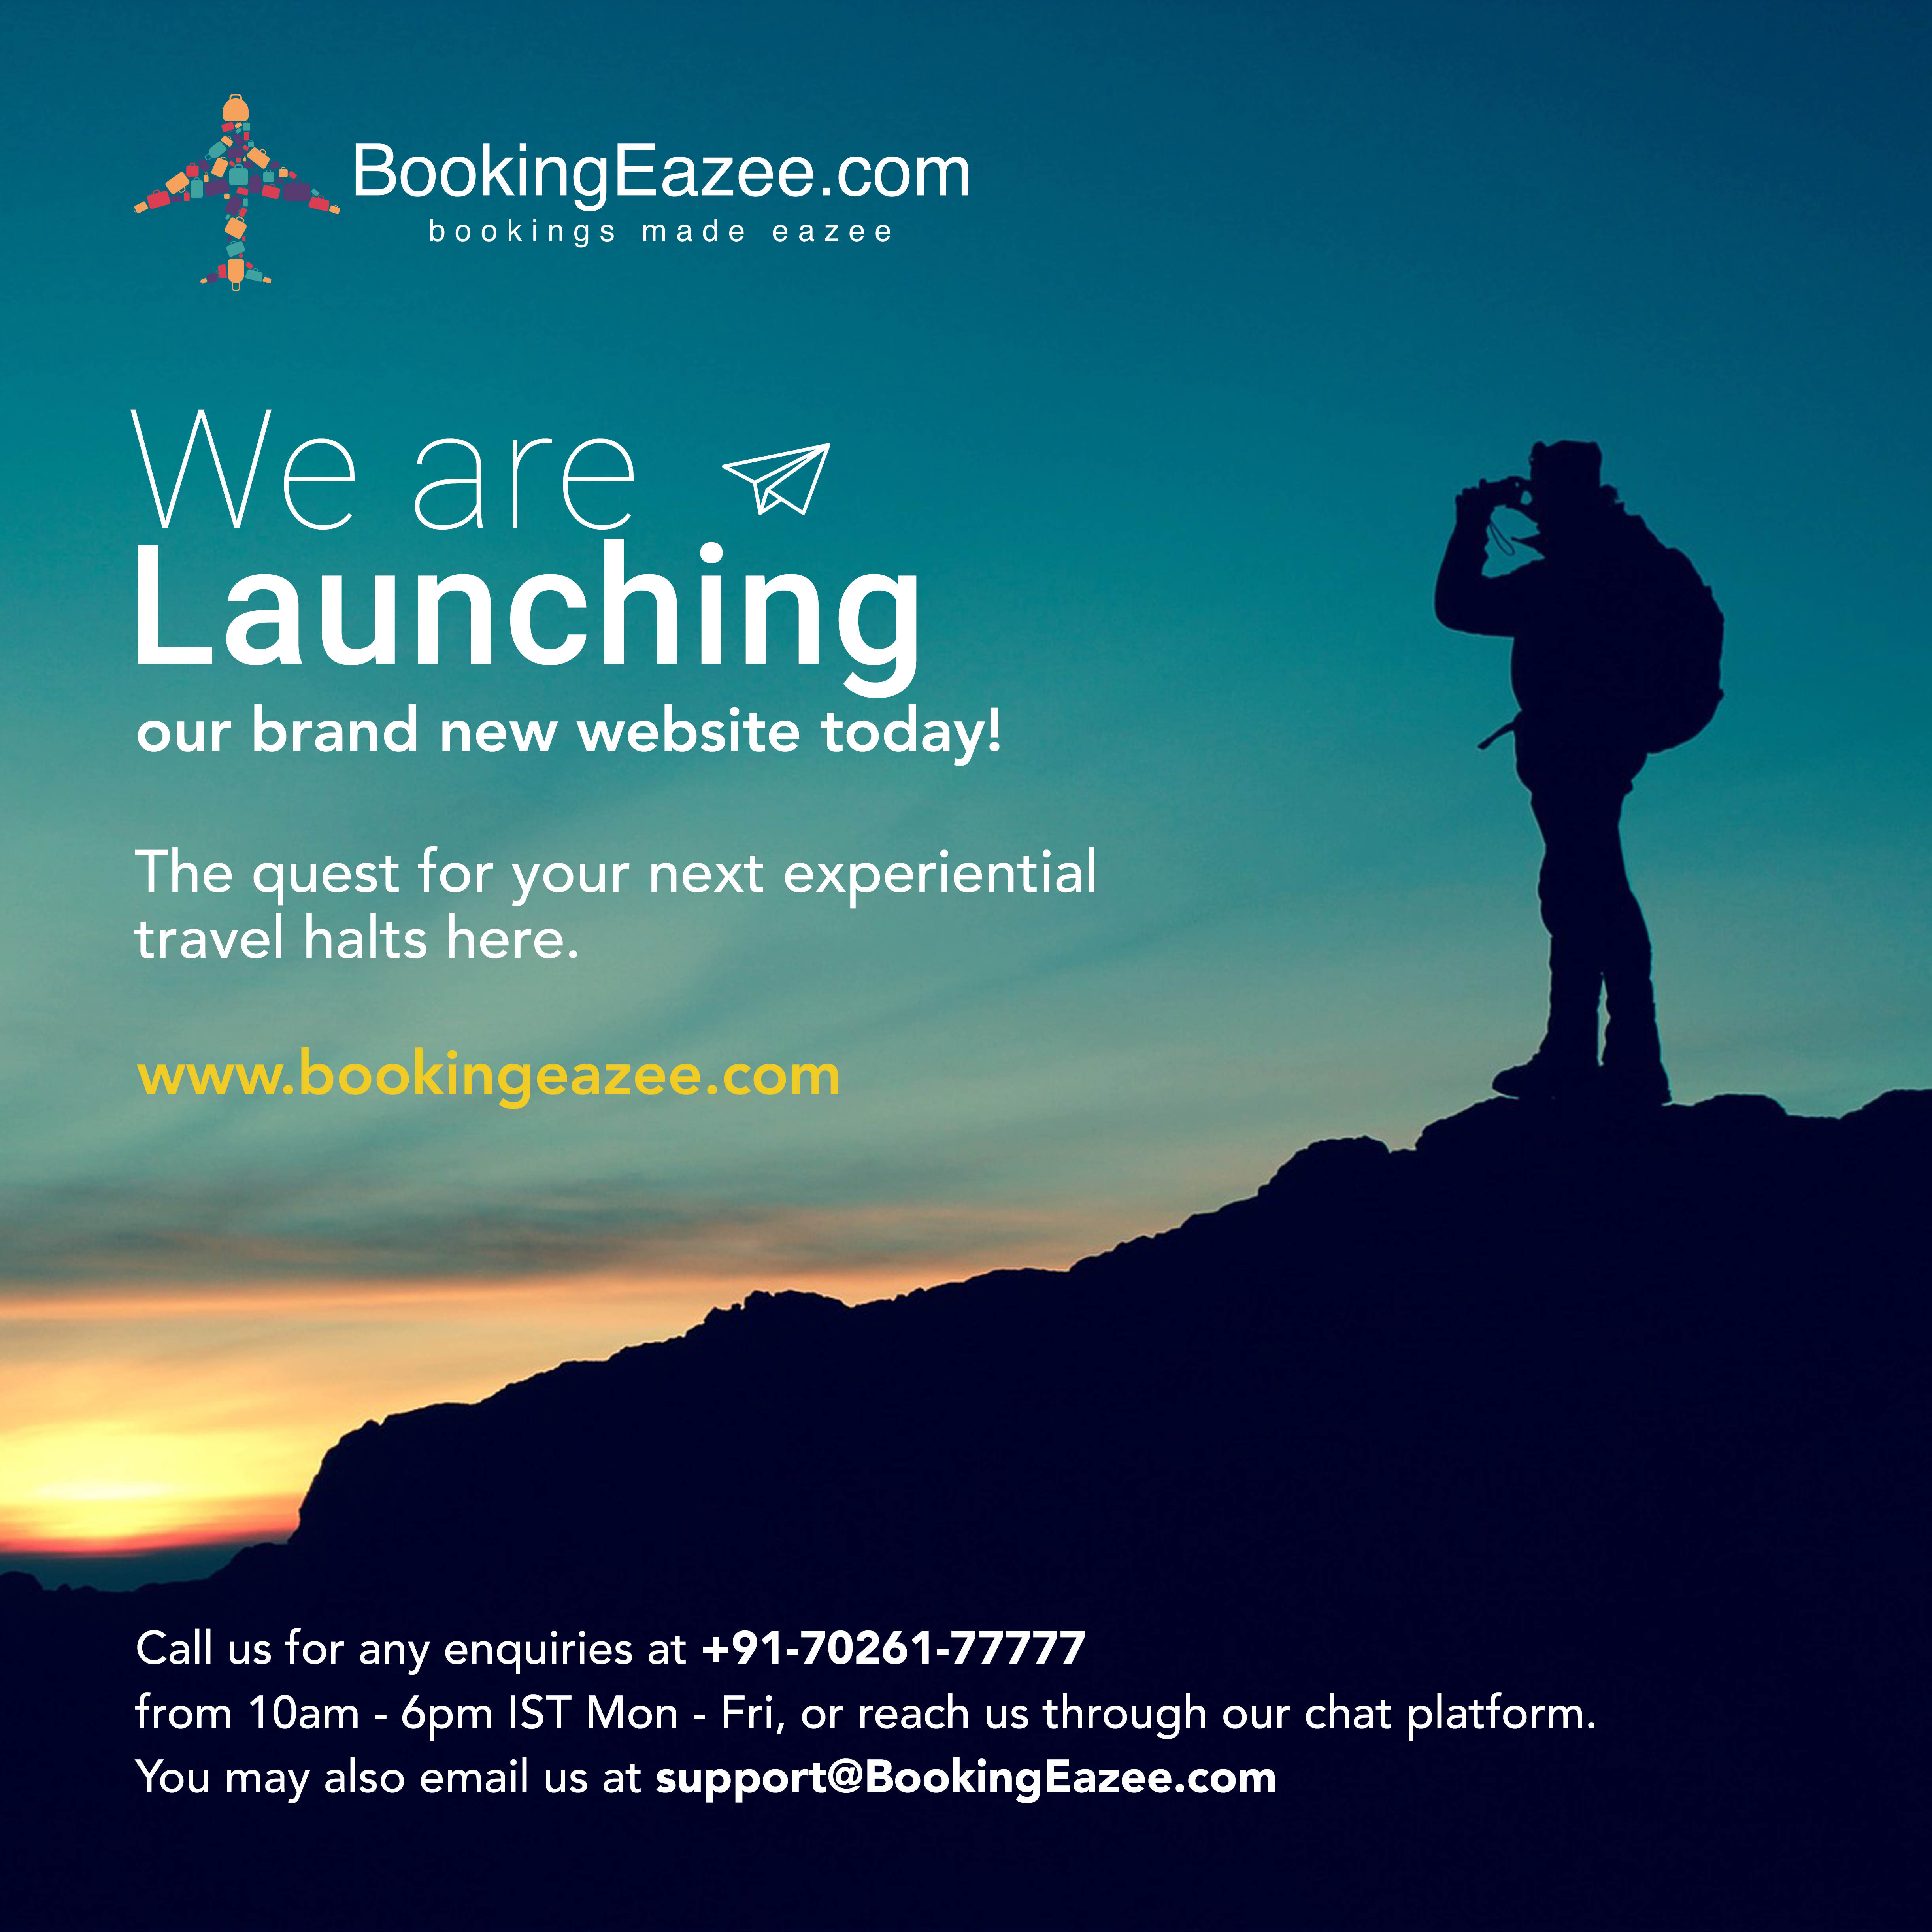 BookingEazeecom A Brand New Website Launched